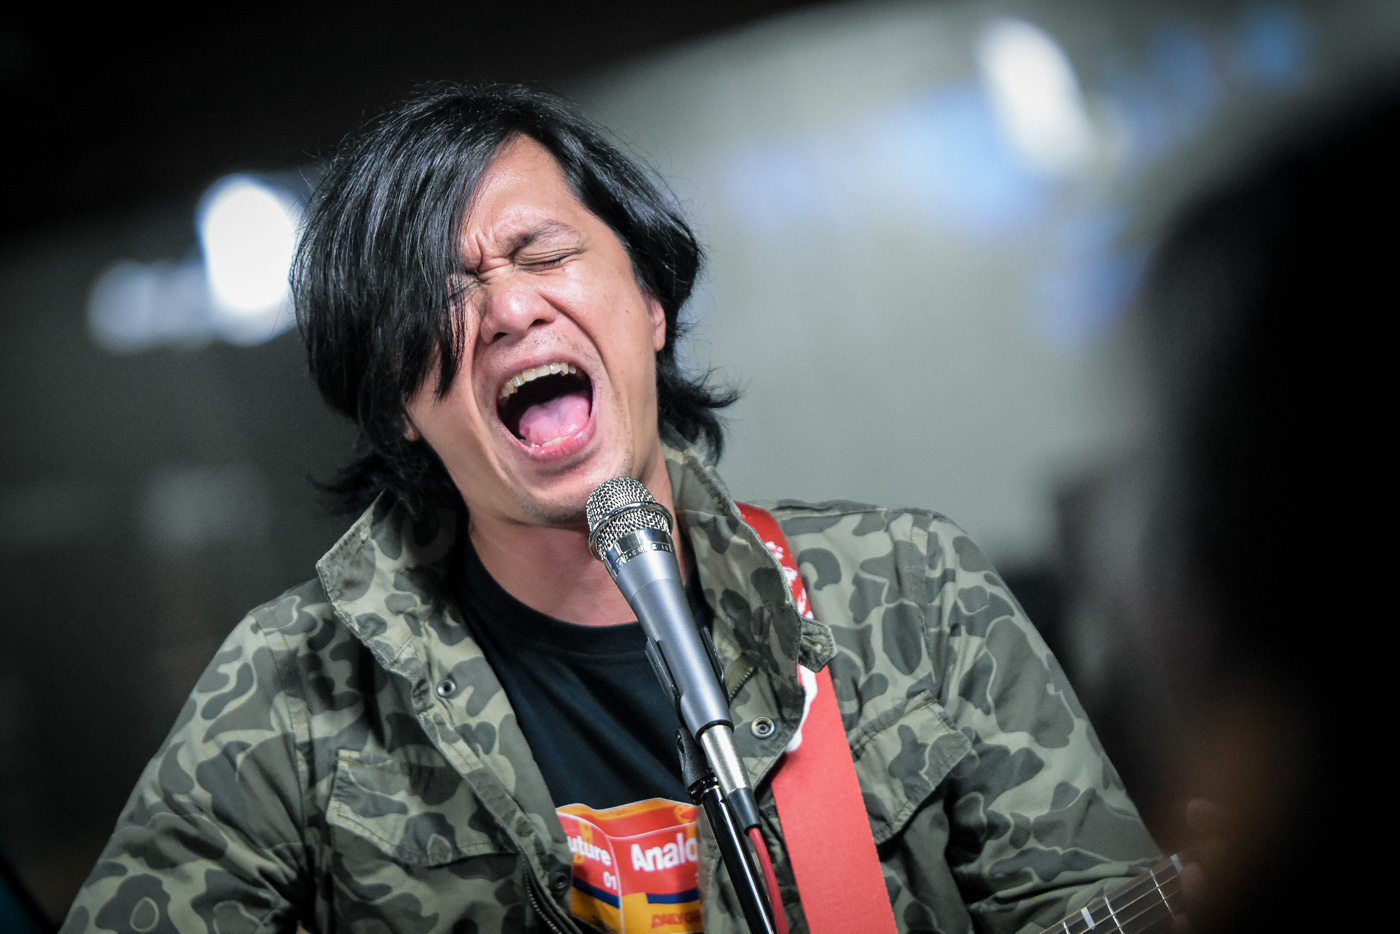 RAYMUND MARASIGAN. The Sandwich frontman performs on Rappler Live Jam in April 2018. File photo by LeAnne Jazul/Rappler